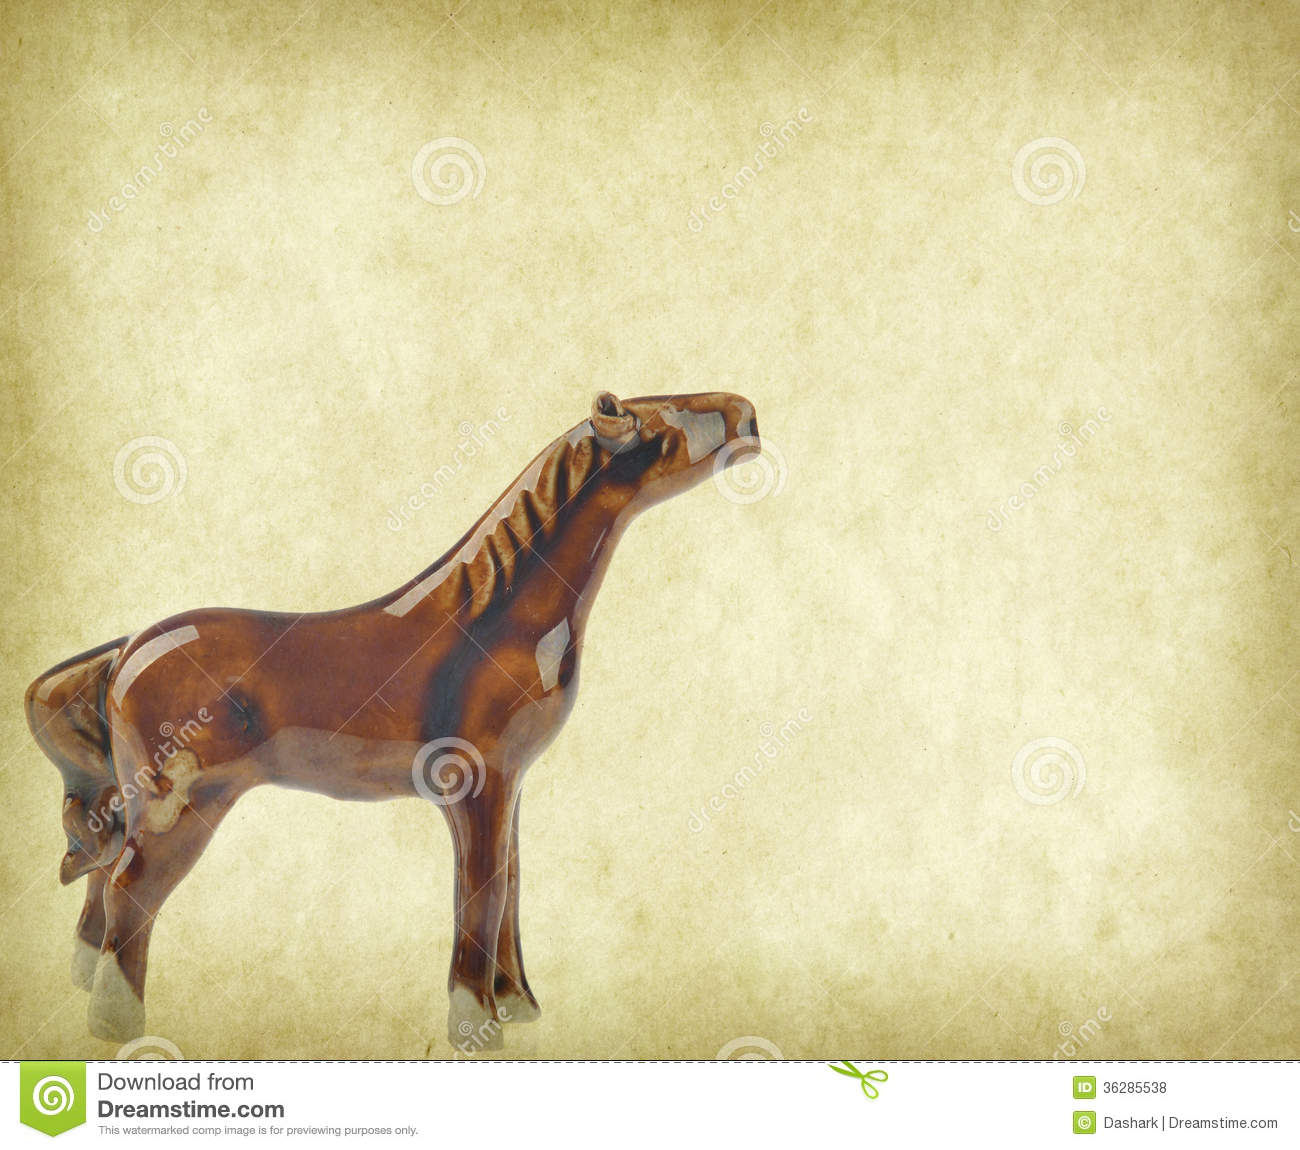 Ceramic Horse Souvenir On Old Paper Chinese Calligraphy